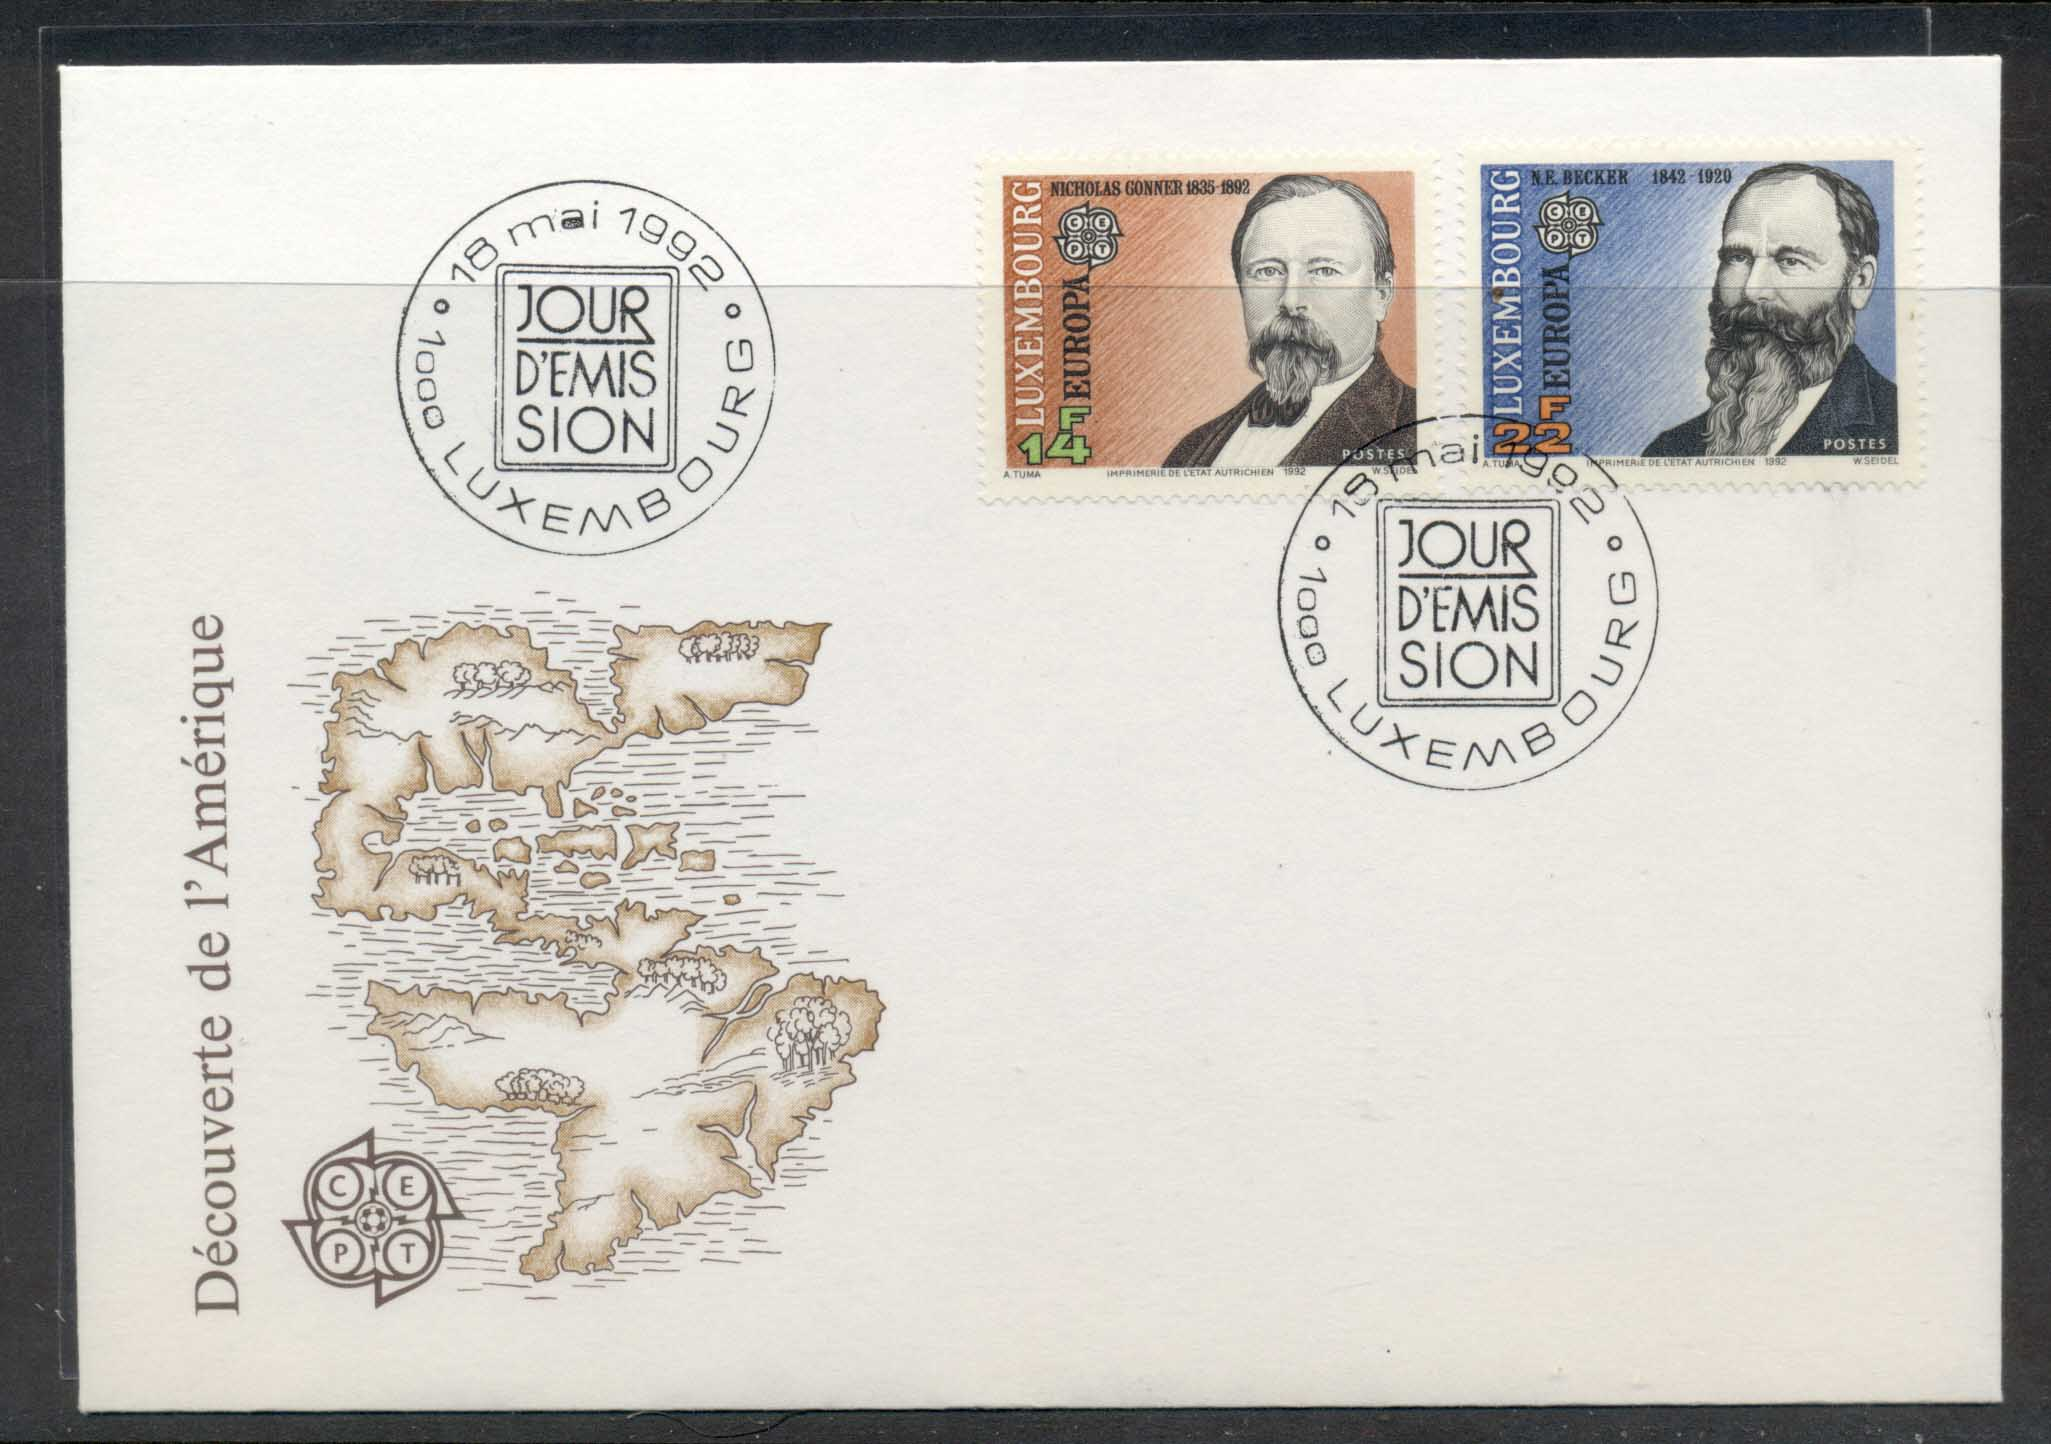 Luxembourg 1992 Europa Columbus Discovery of America FDC